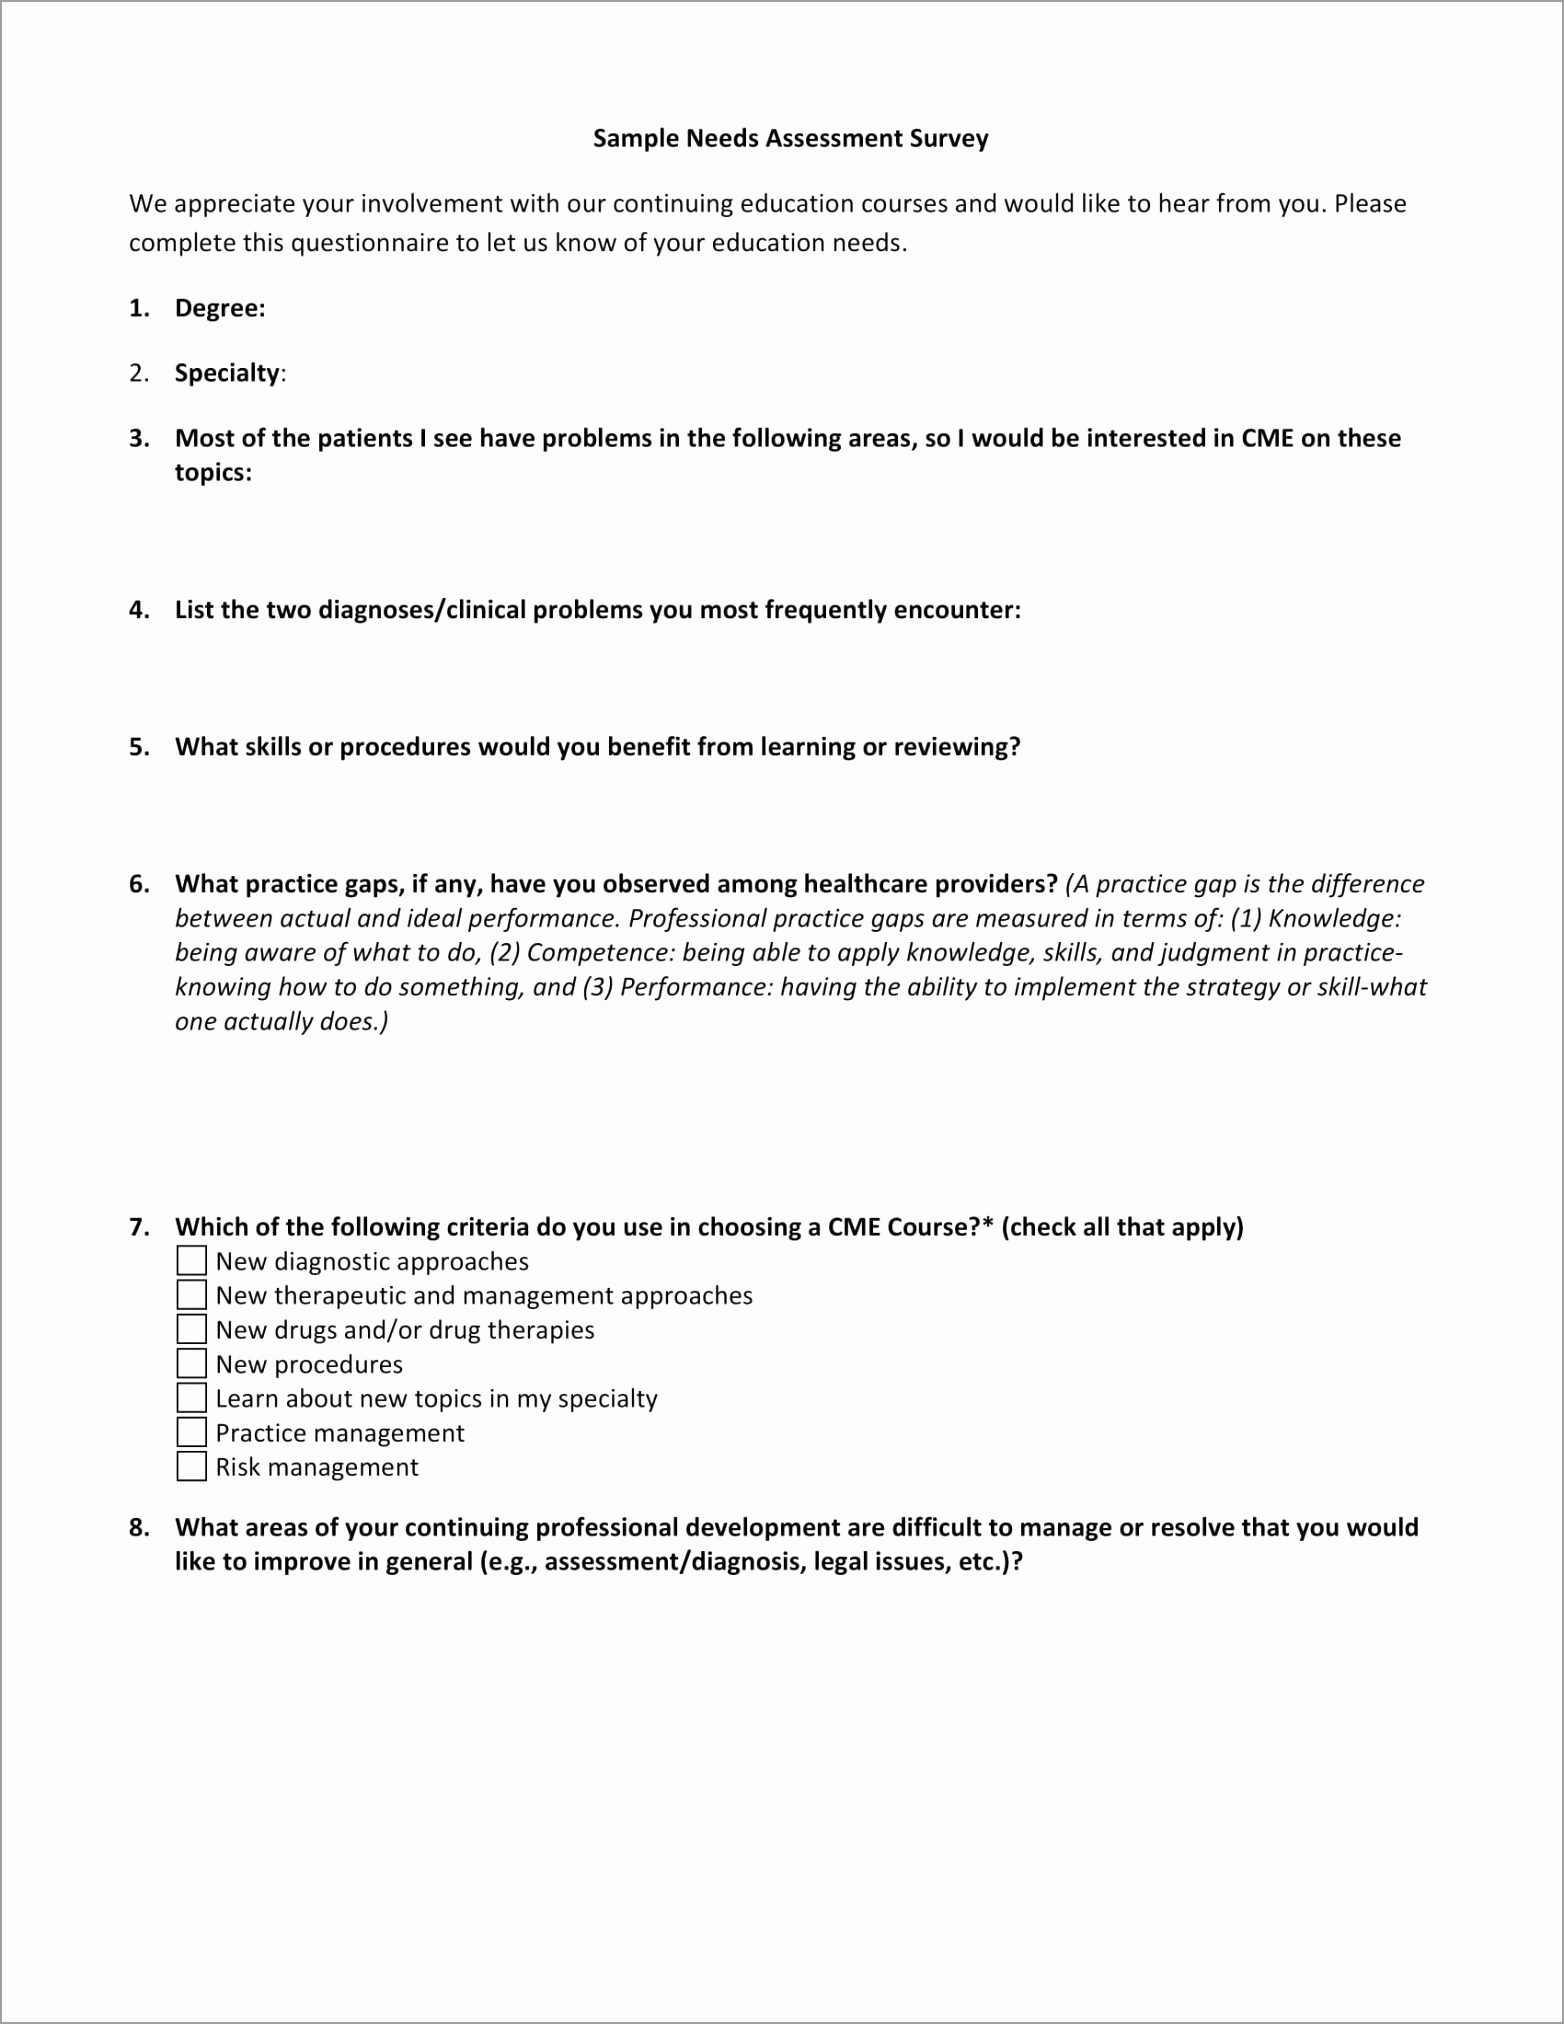 Needs Assessment Survey Example tpwoe